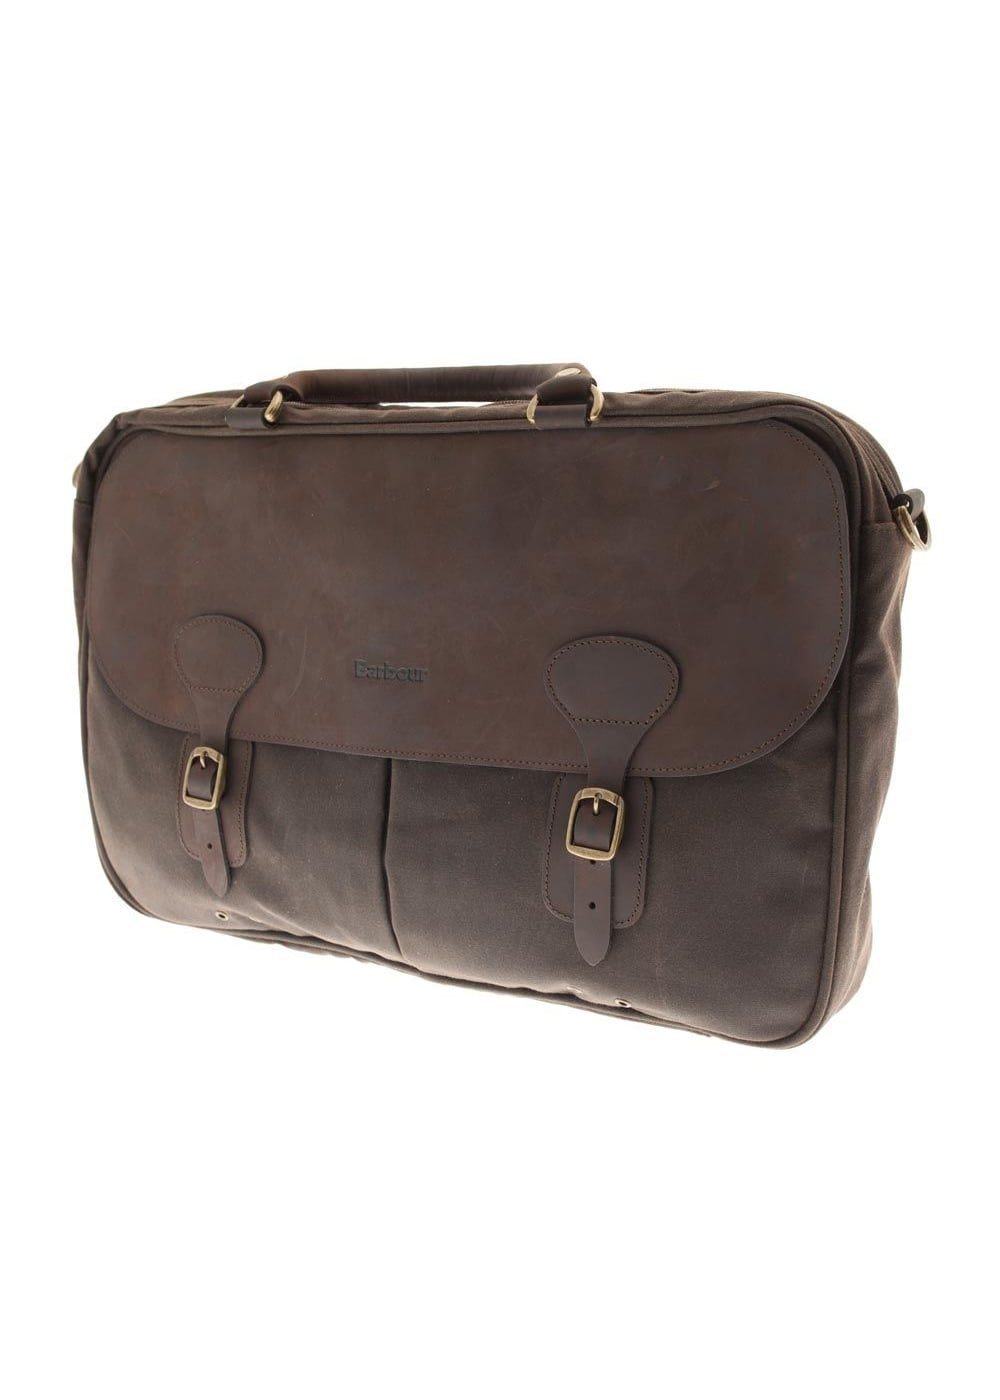 Barbour Wax Leather Briefcase NEW Large Image